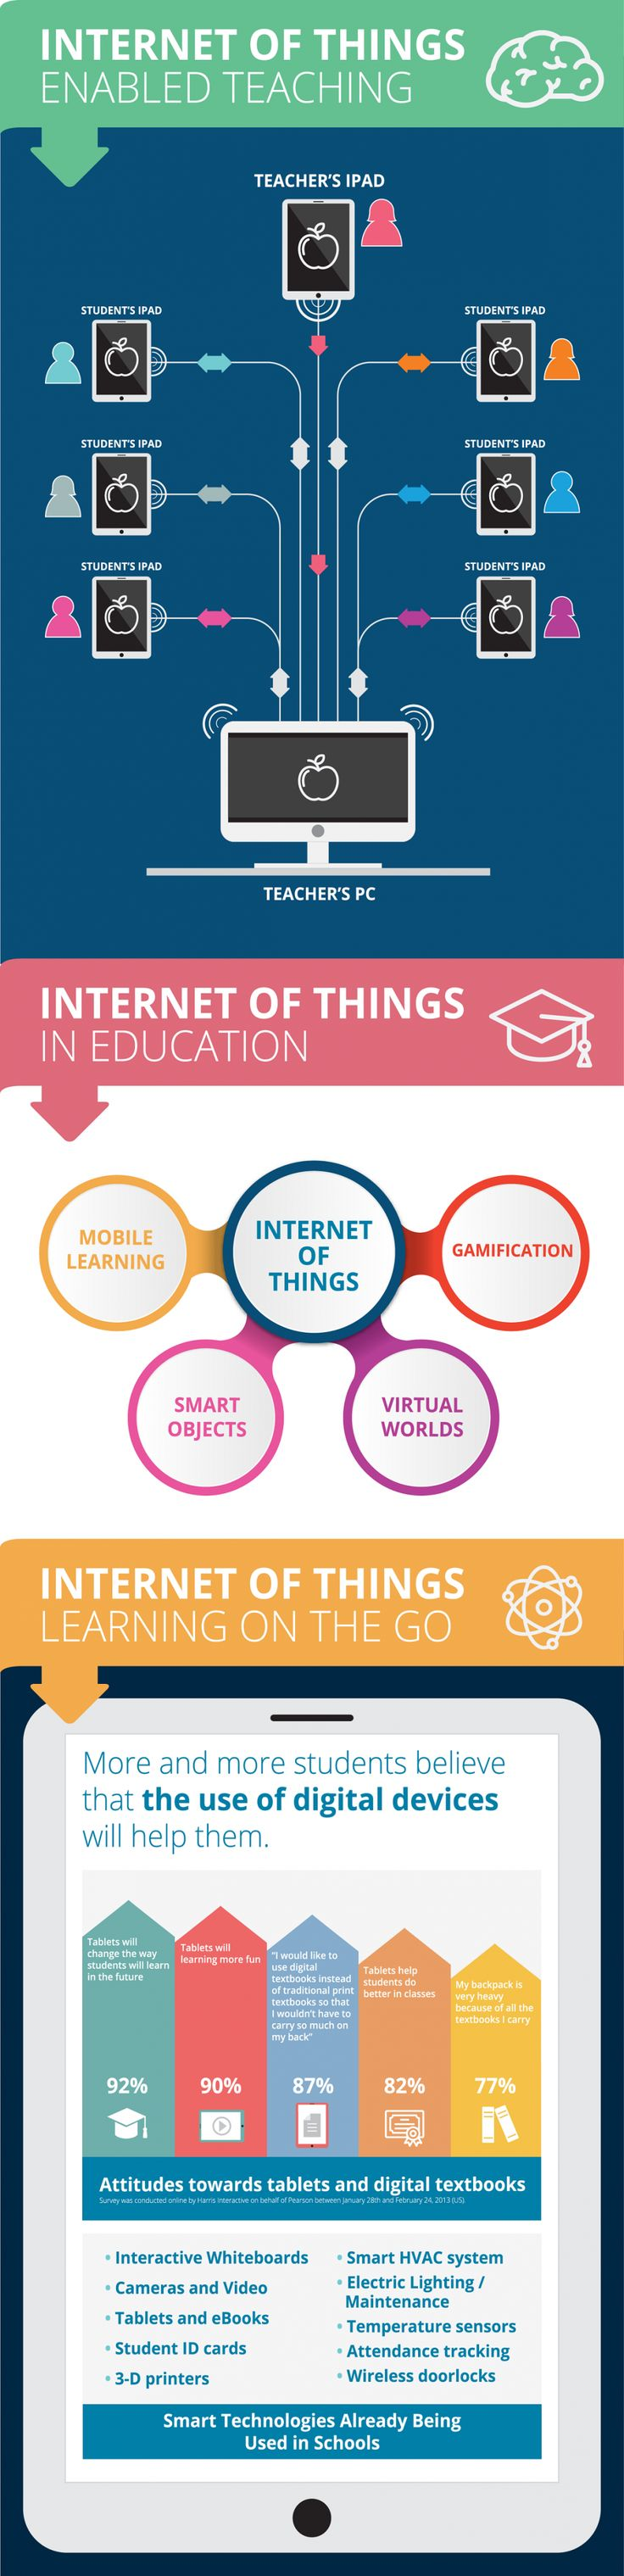 Internet of Things in the Classroom Infographic